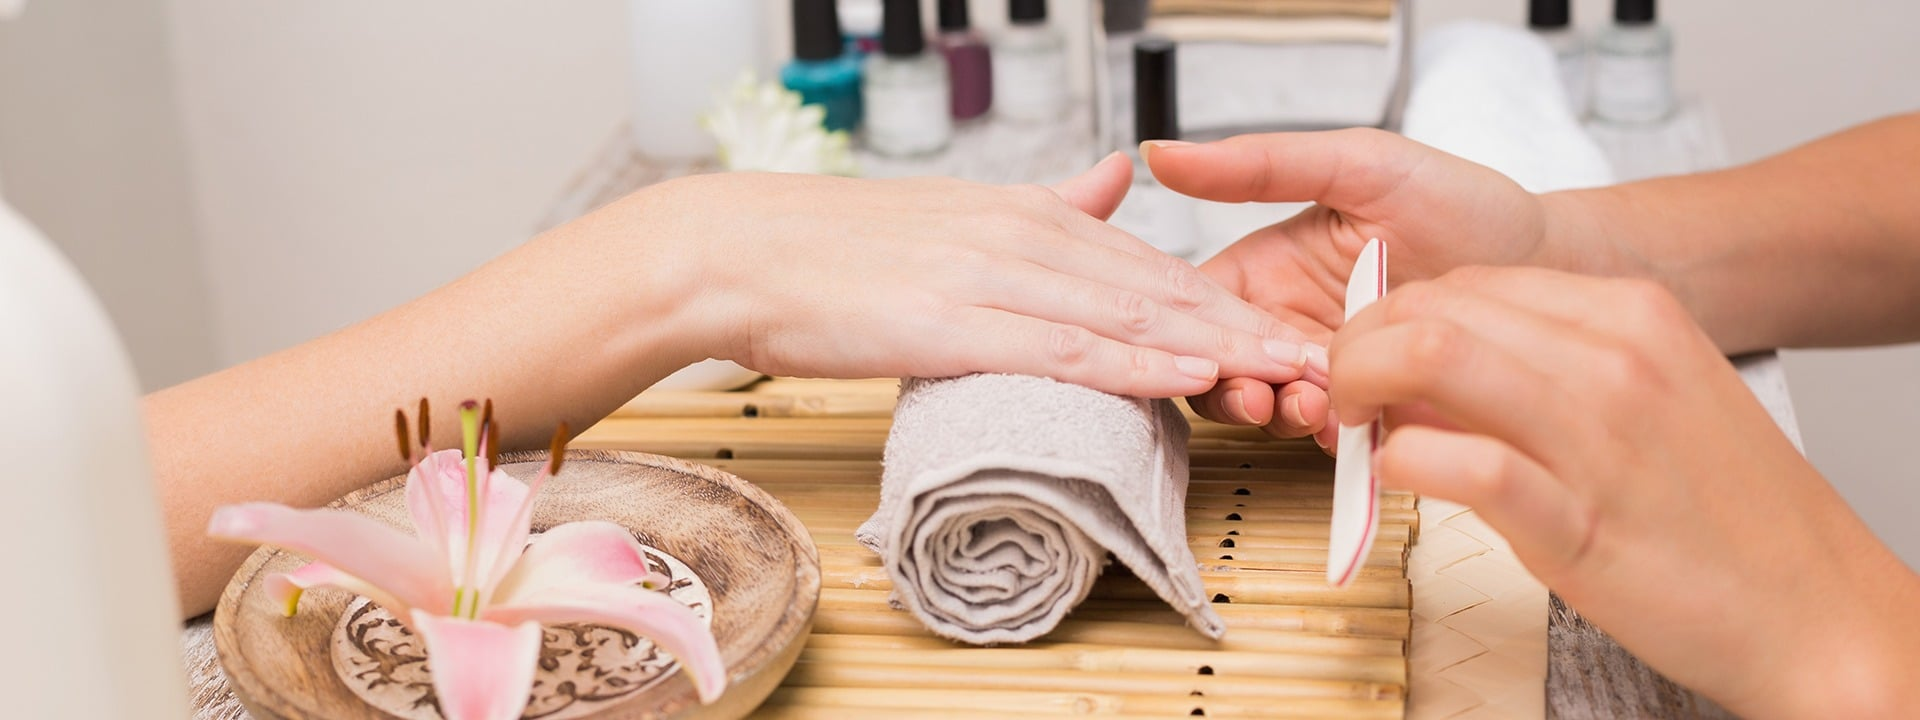 Loyalty programs are the health and beauty industry's new best friend